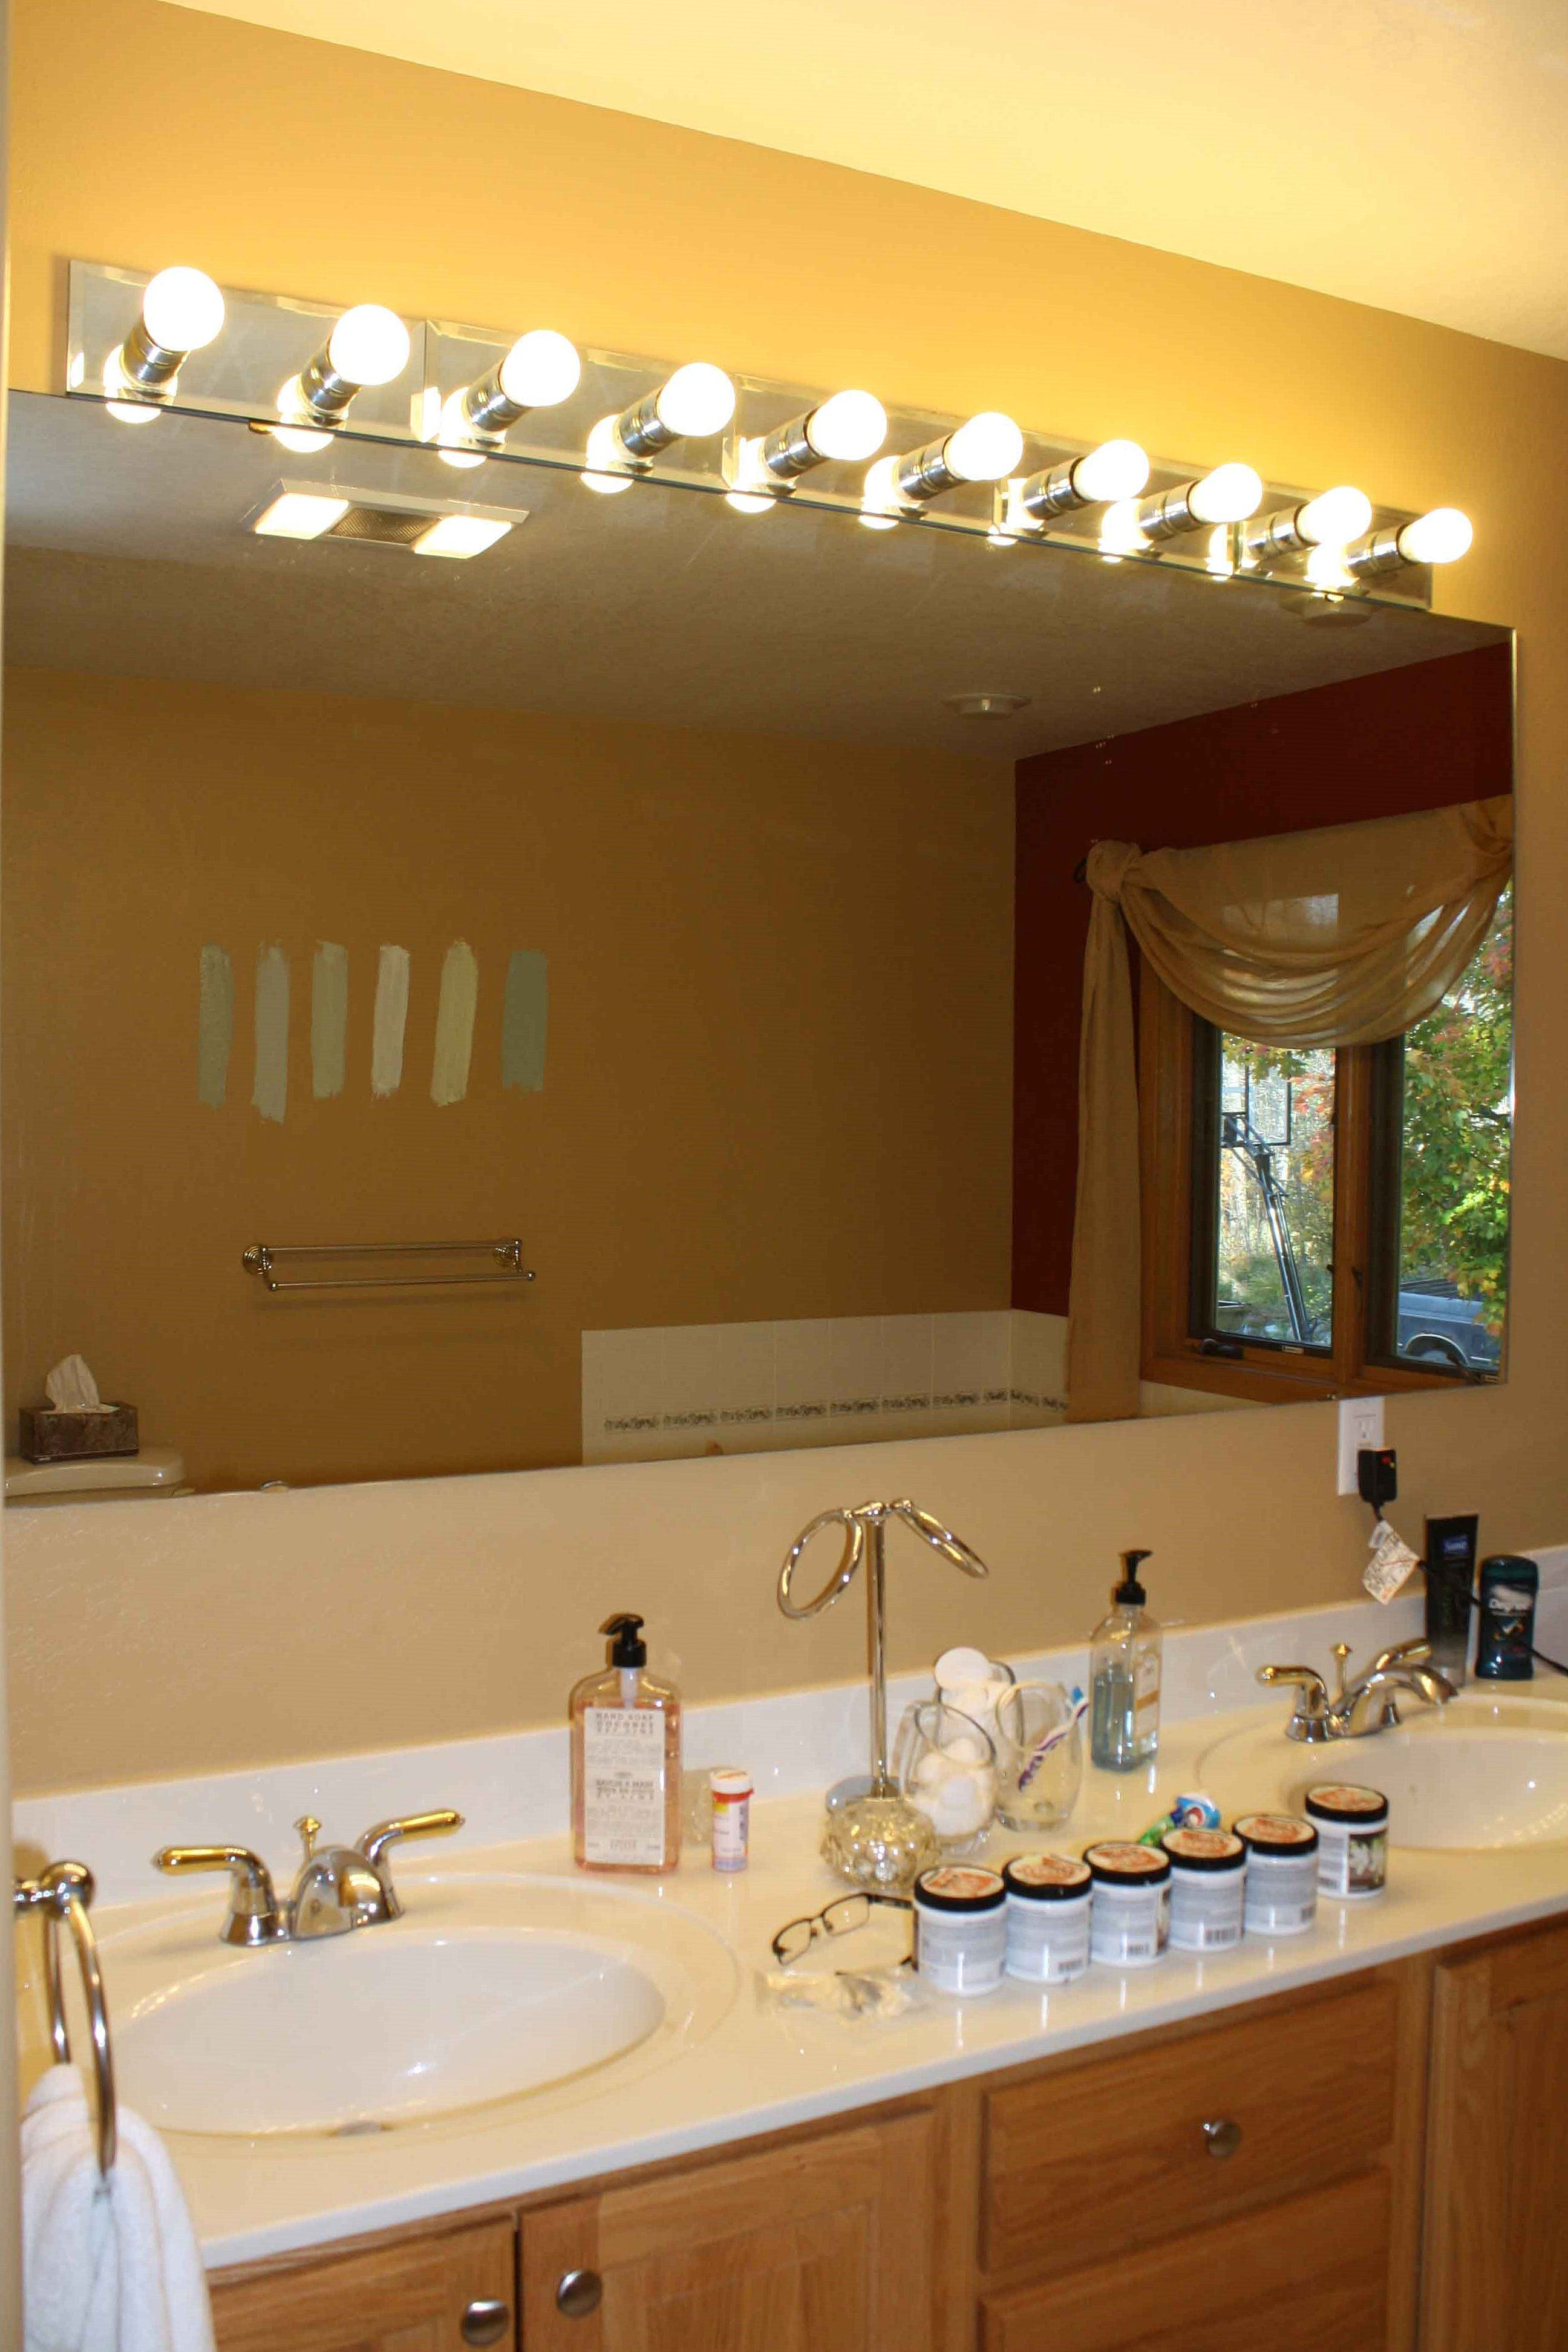 Diy Bathrom Lighting Fixtures With Large Mirror Design Kbhomes